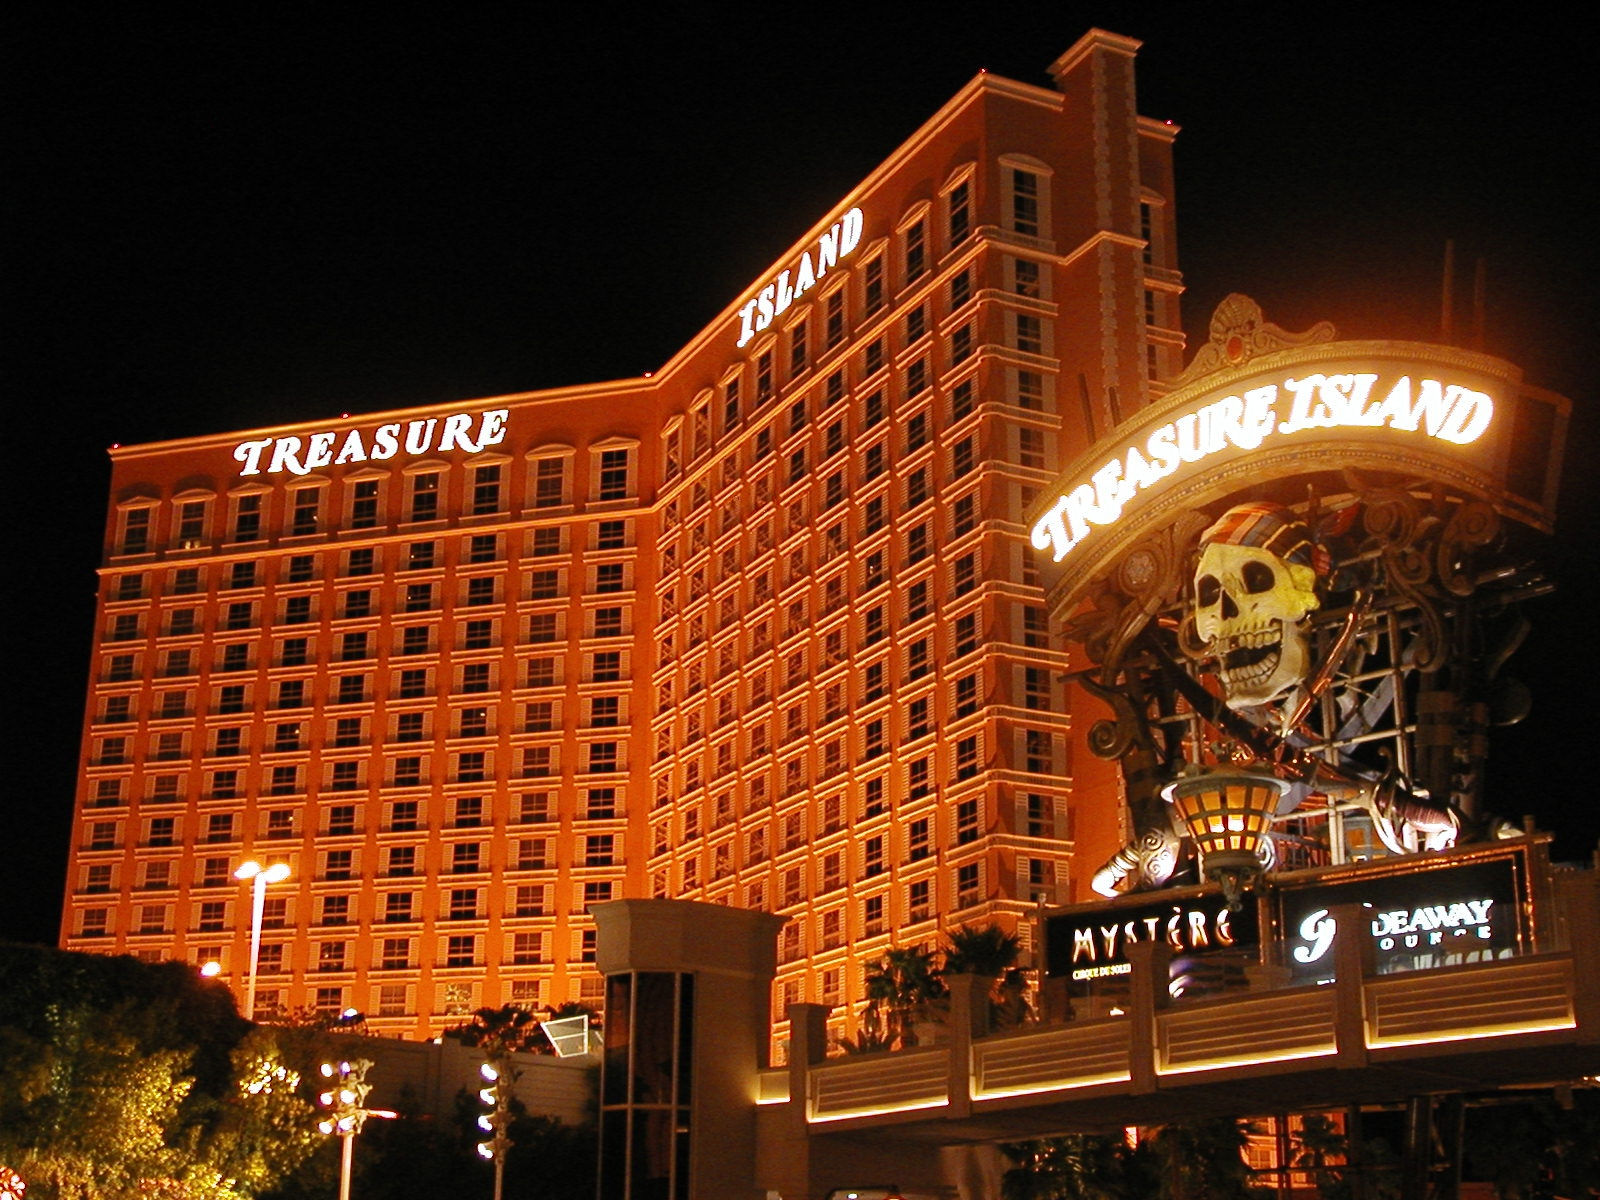 Treasure Island casino